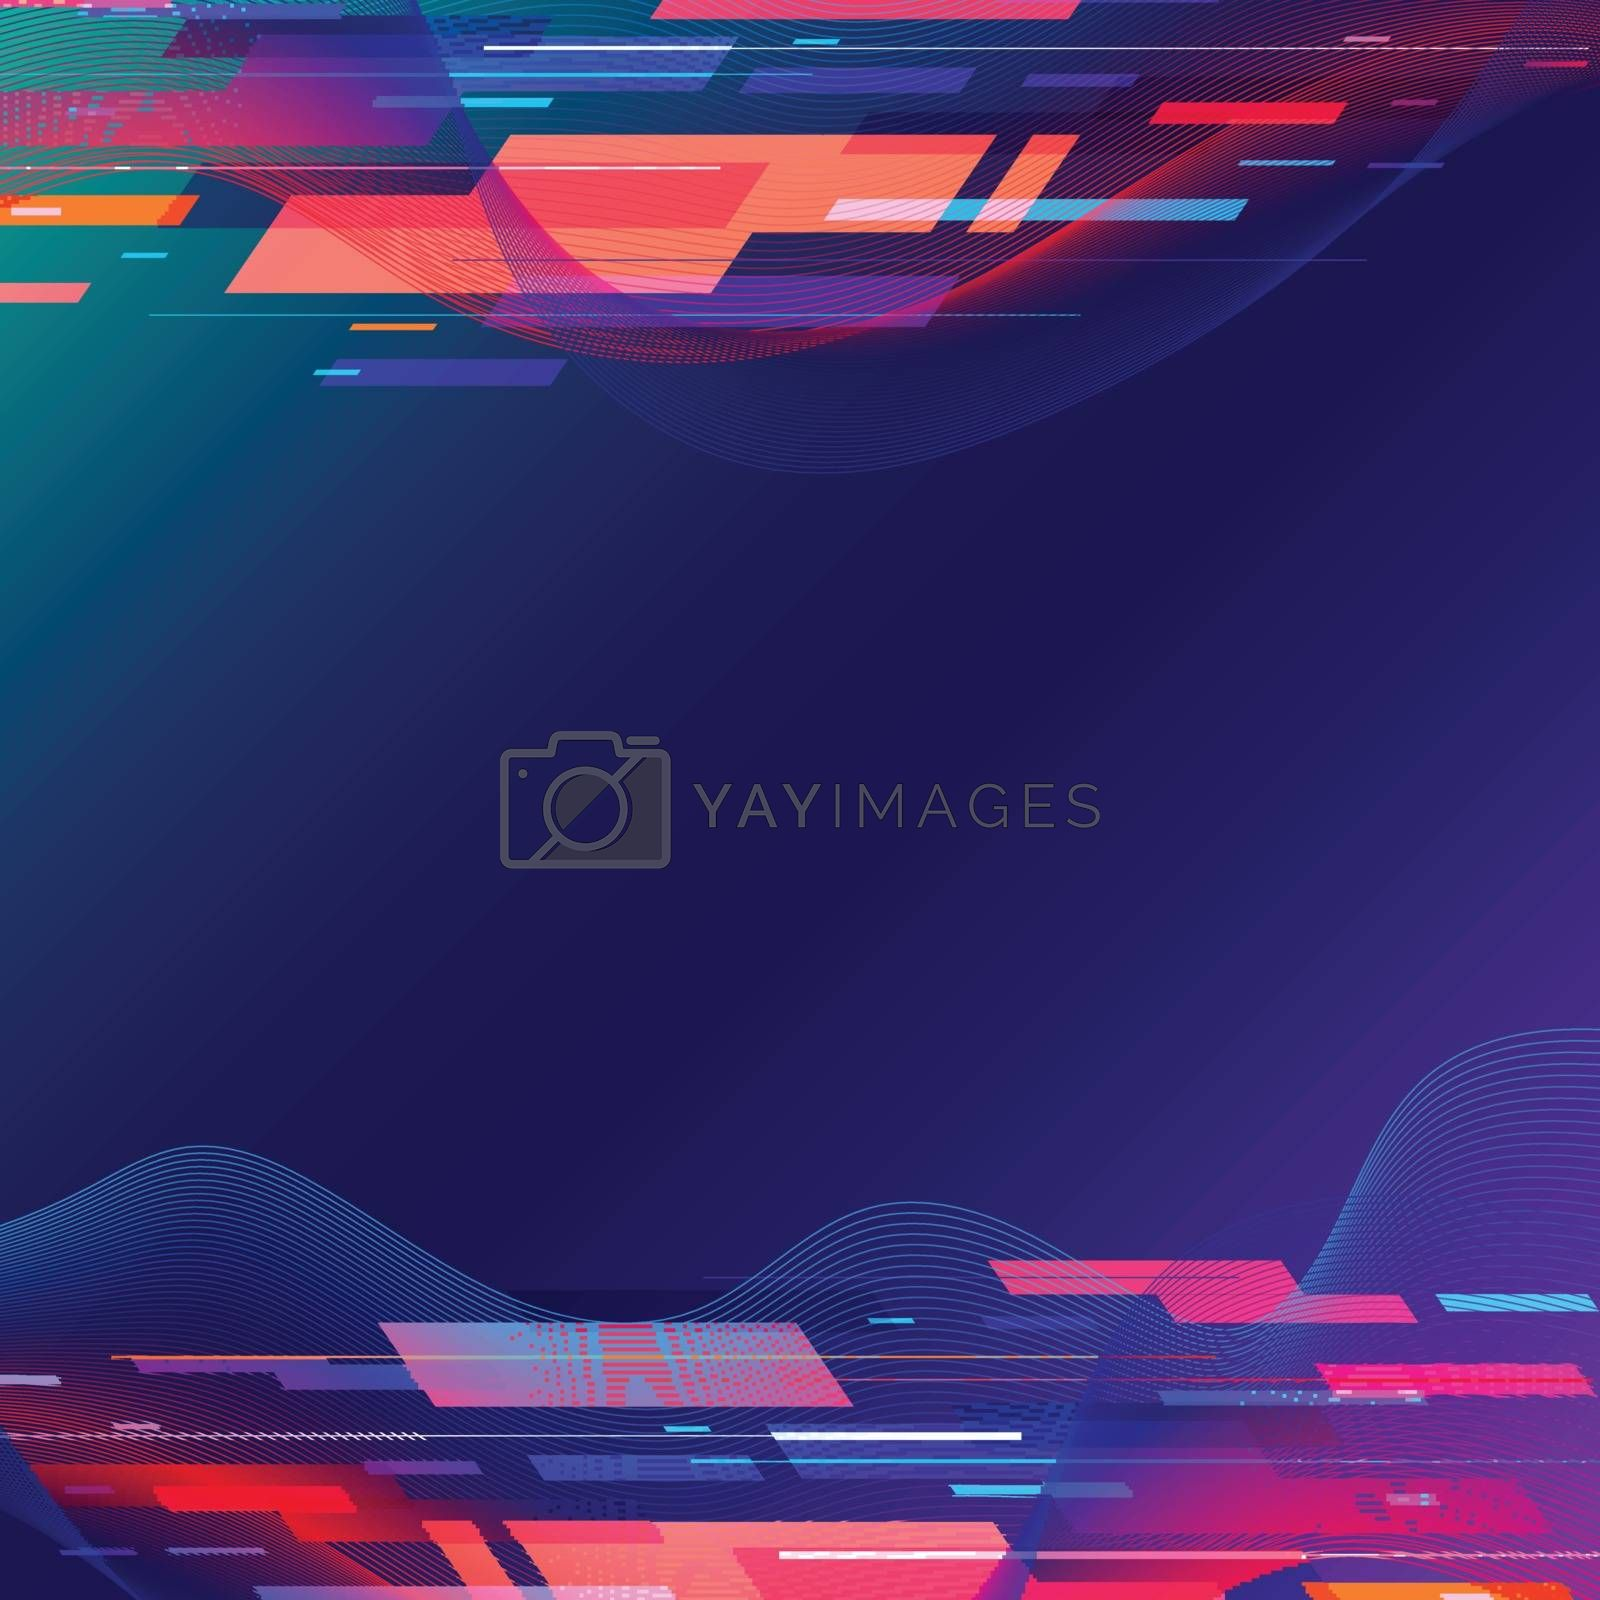 Template abstract technology geometric and twist lines colorful on dark blue background. Vector illustration